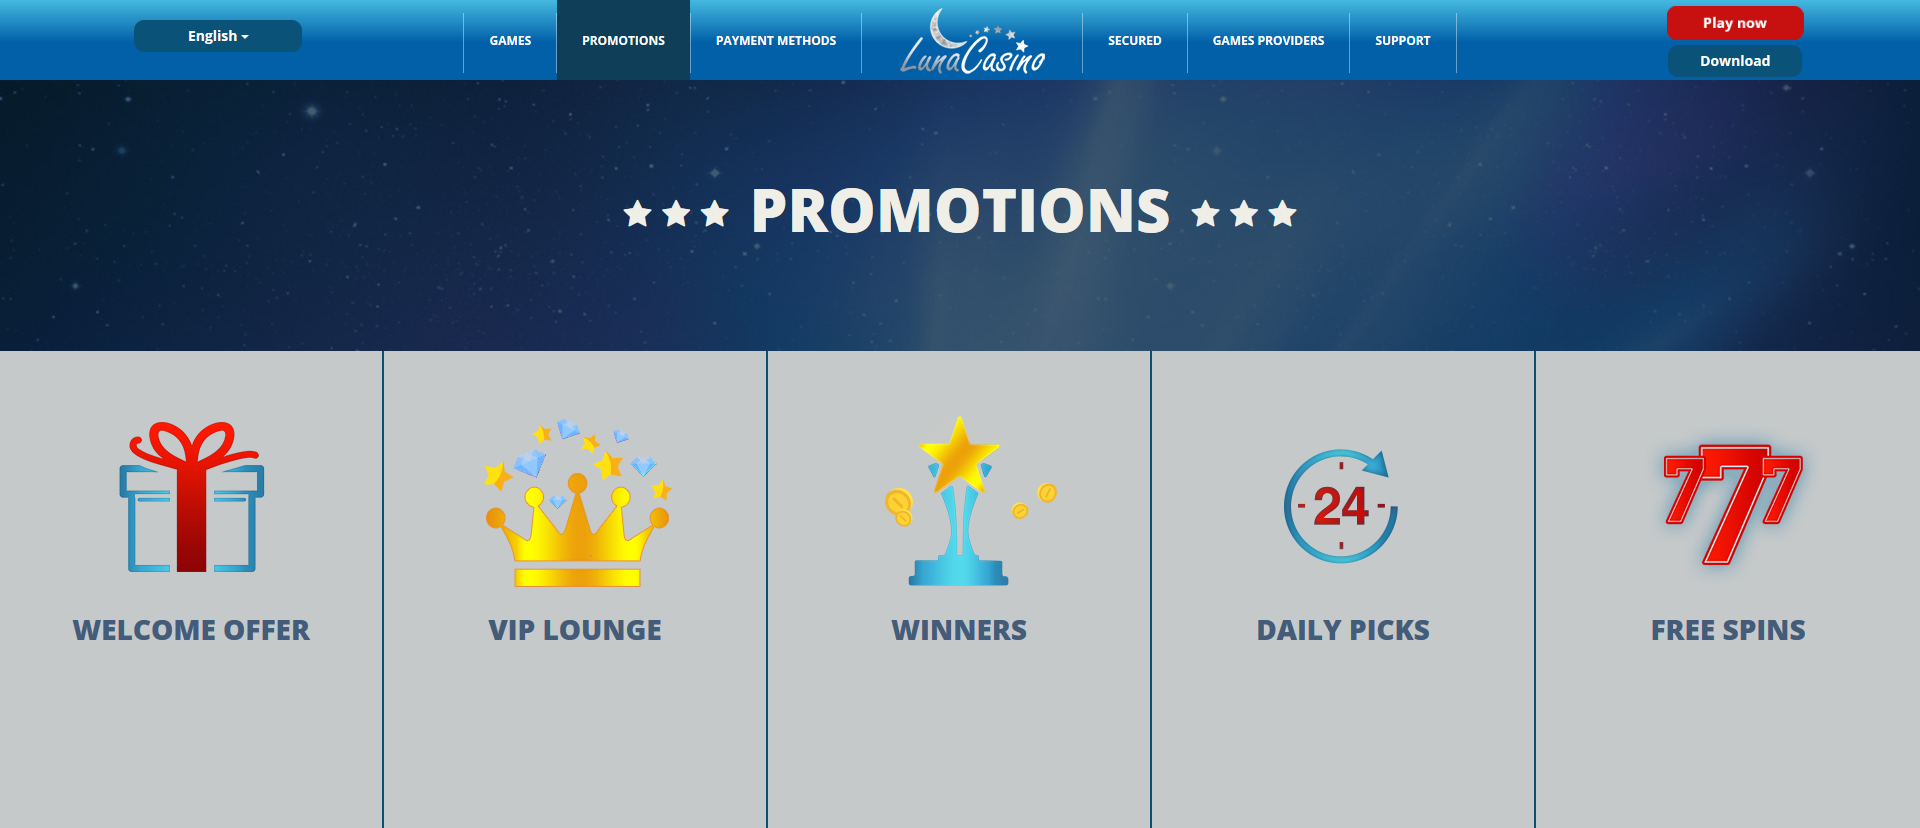 Supreme Play Casino Online Review With Promotions & Bonuses